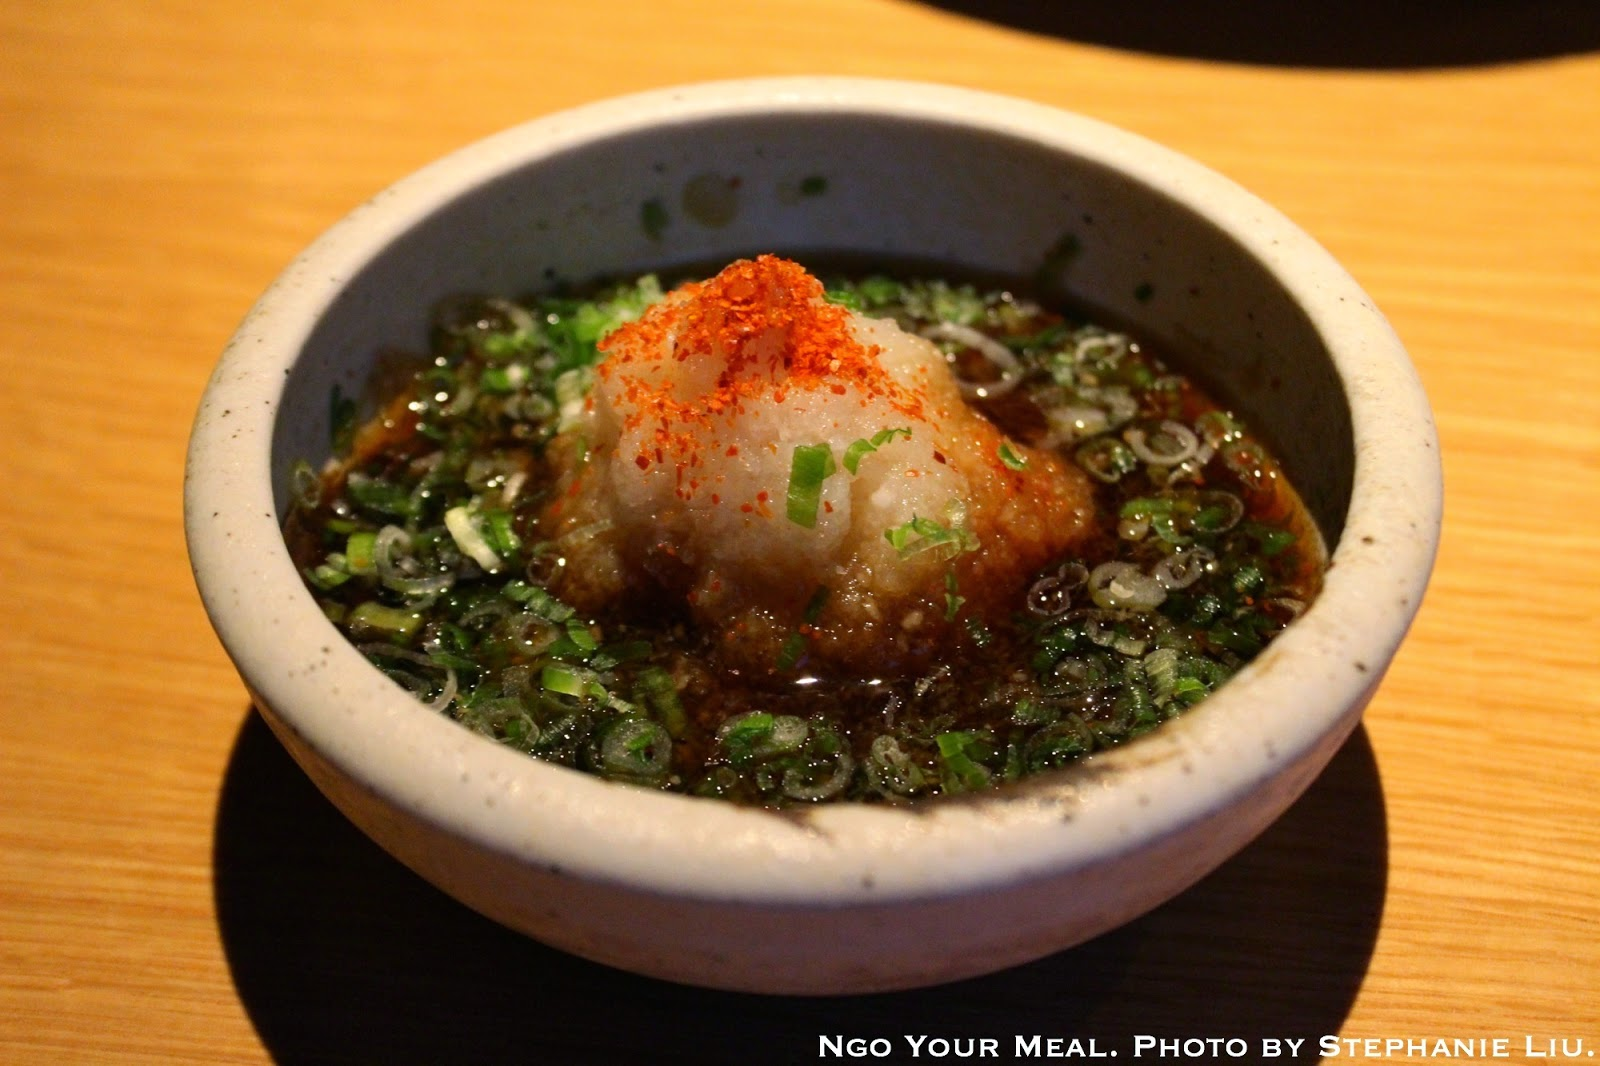 Spicy Ponzu Sauce for the Karei Kara Age at EN Japanese Brasserie